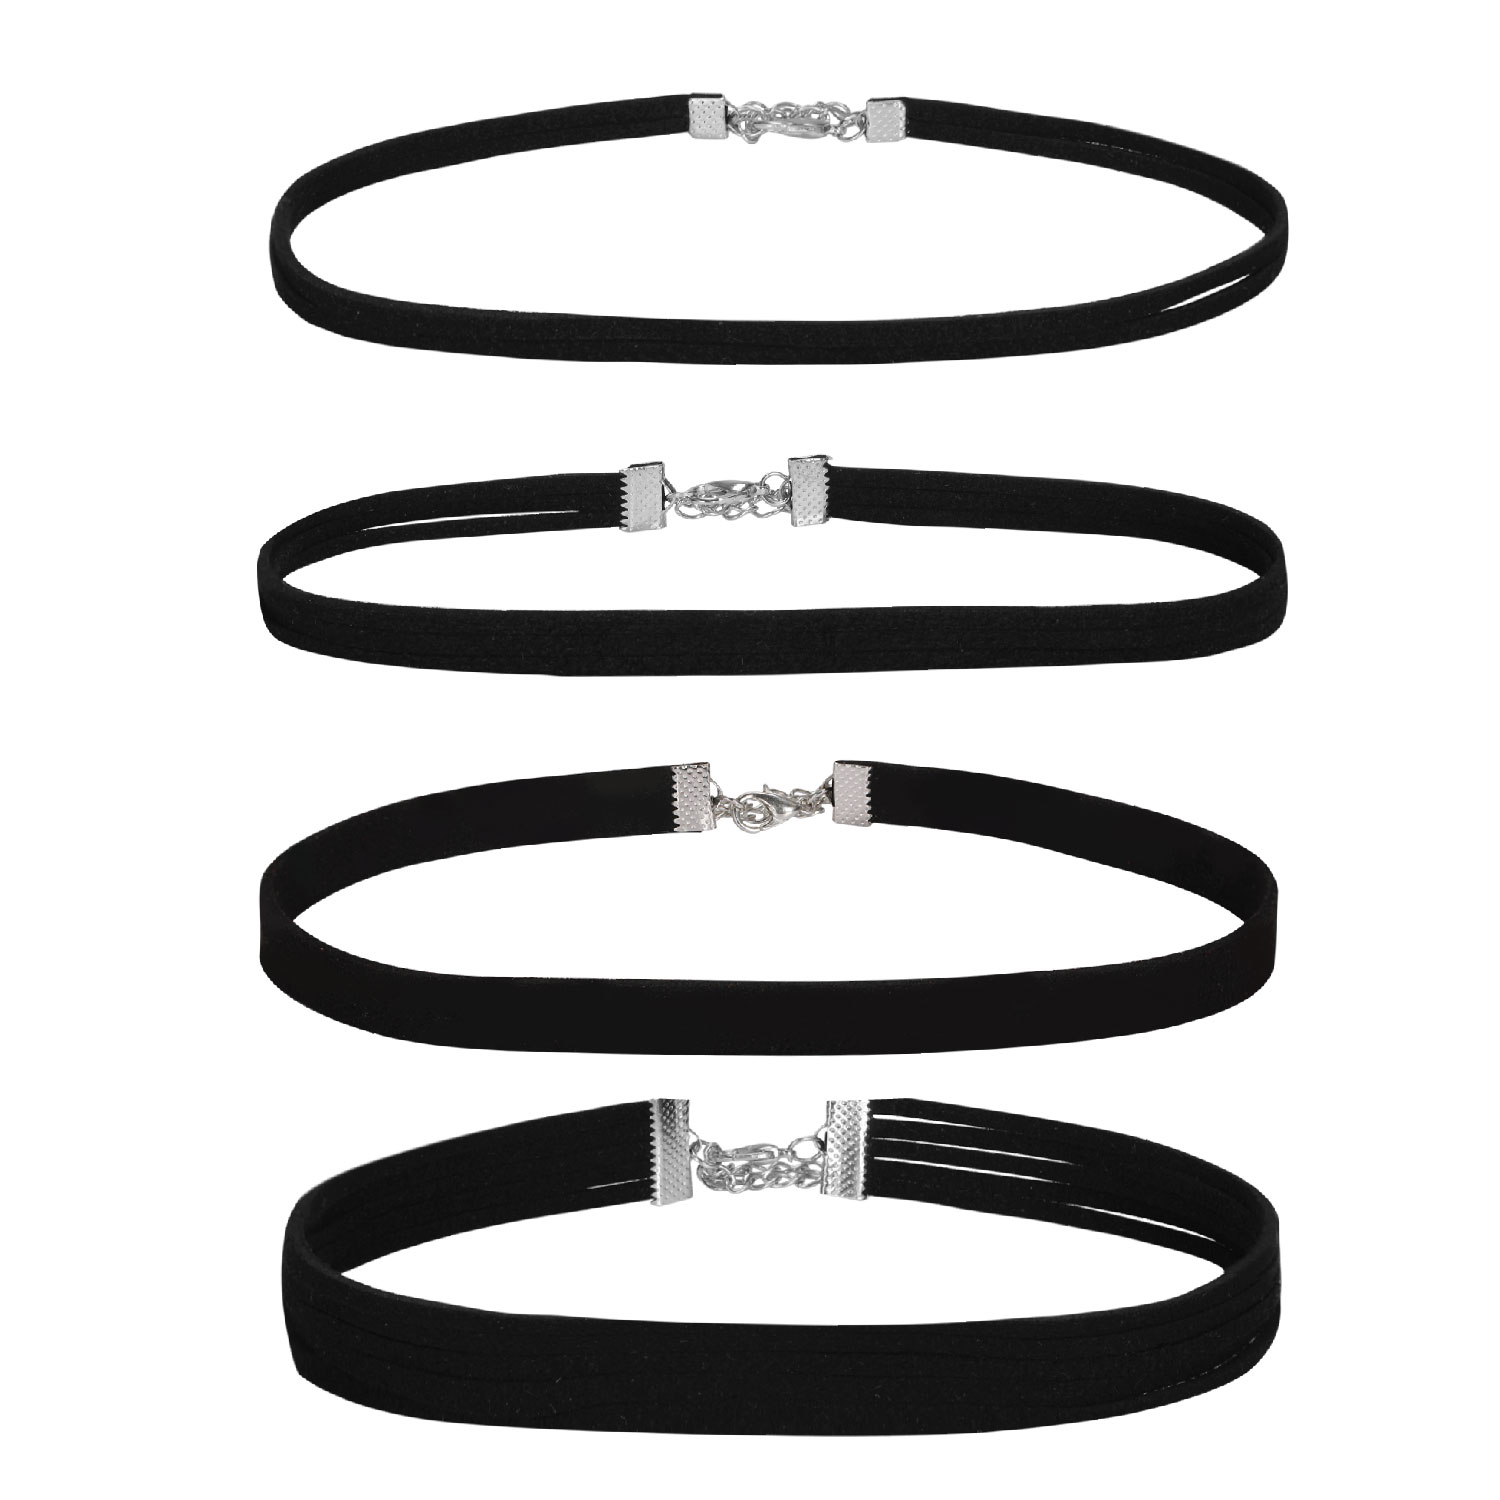 BodyJ4You Choker Necklace Layer Black Velvet Set Ribbon Gothic Collar 4 Pieces